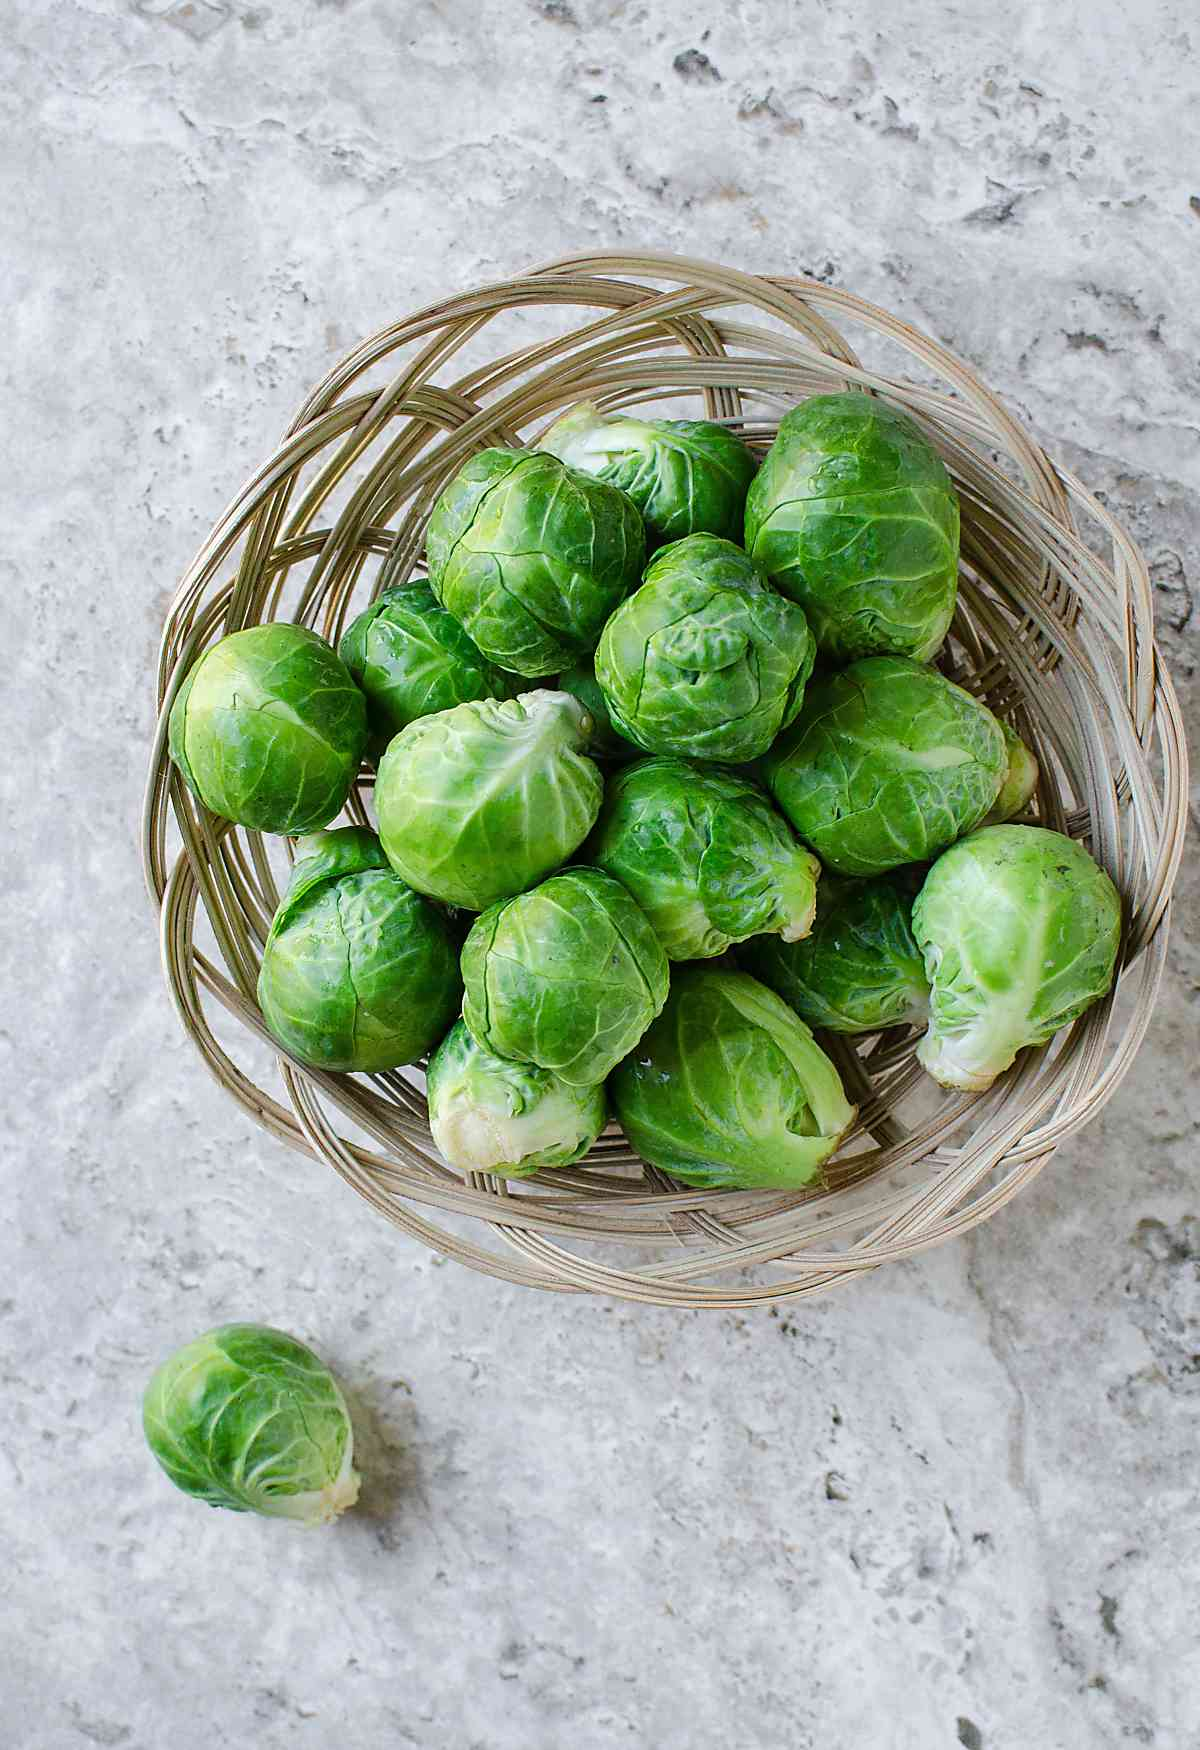 Fresh brussels sprouts for preparing sautéed brussels sprouts